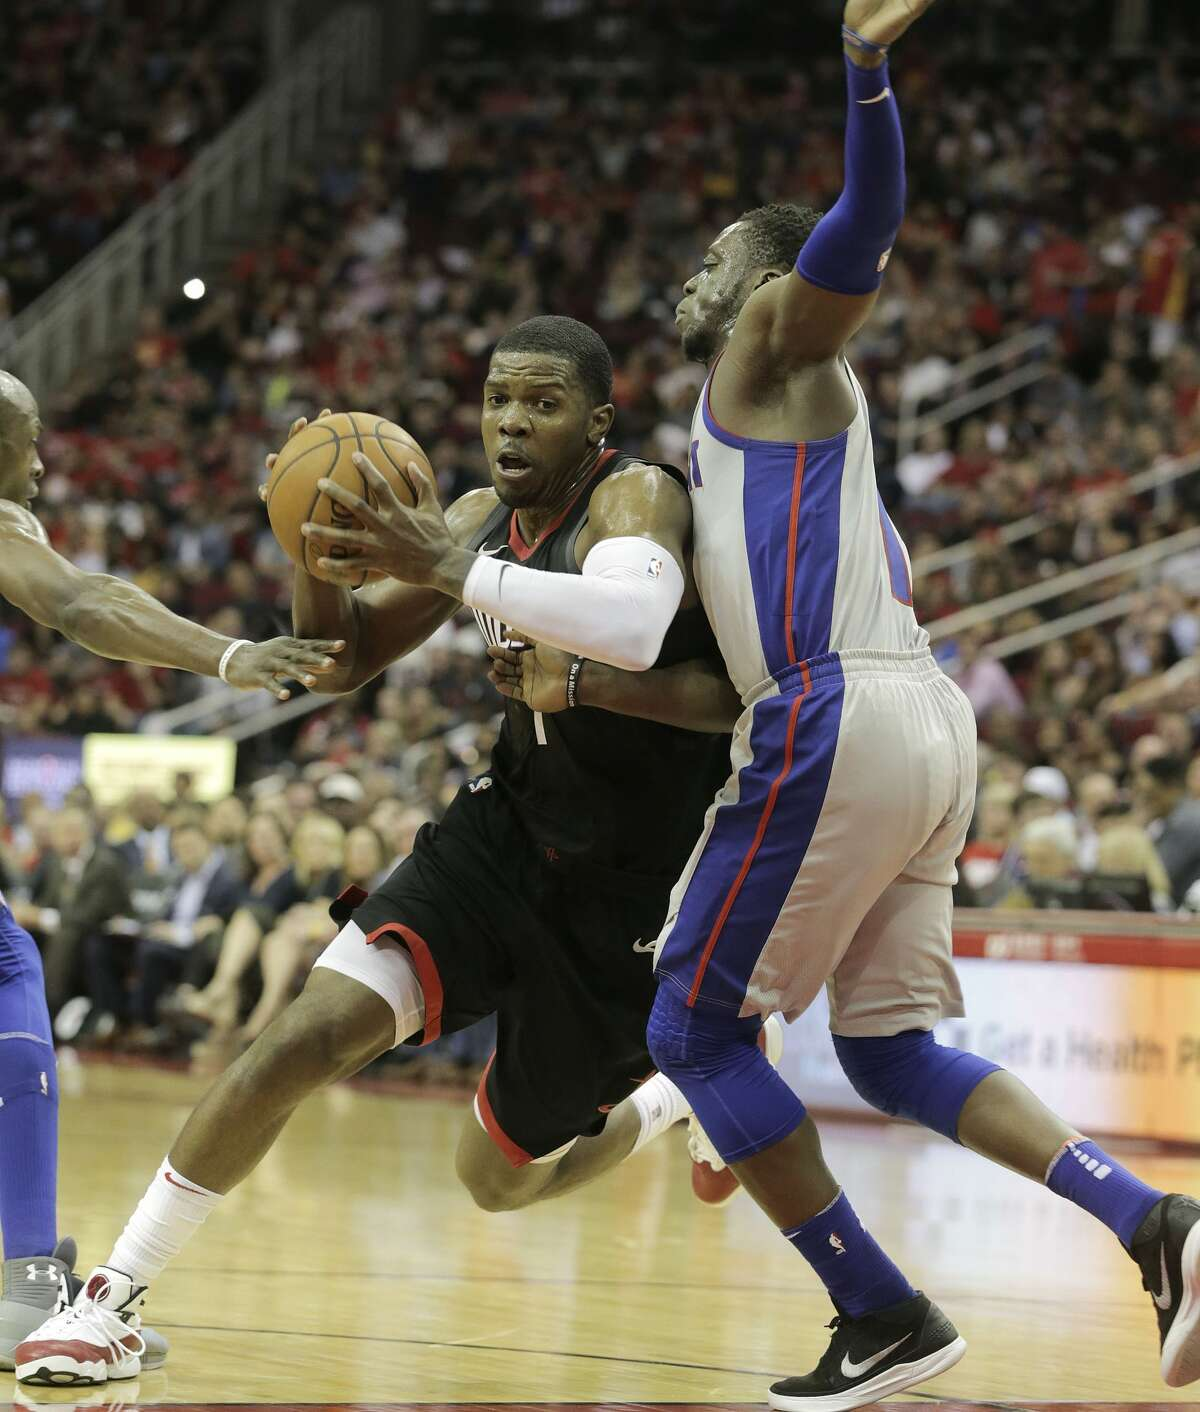 Houston Rockets guard Joe Johnson (7) drives to the basket past Detroit Pistons guard Reggie Jackson (1) at Toyota Center on Thursday, March 22, 2018, in Houston. Rockets won the game 100-96 in overtime. ( Elizabeth Conley / Houston Chronicle )